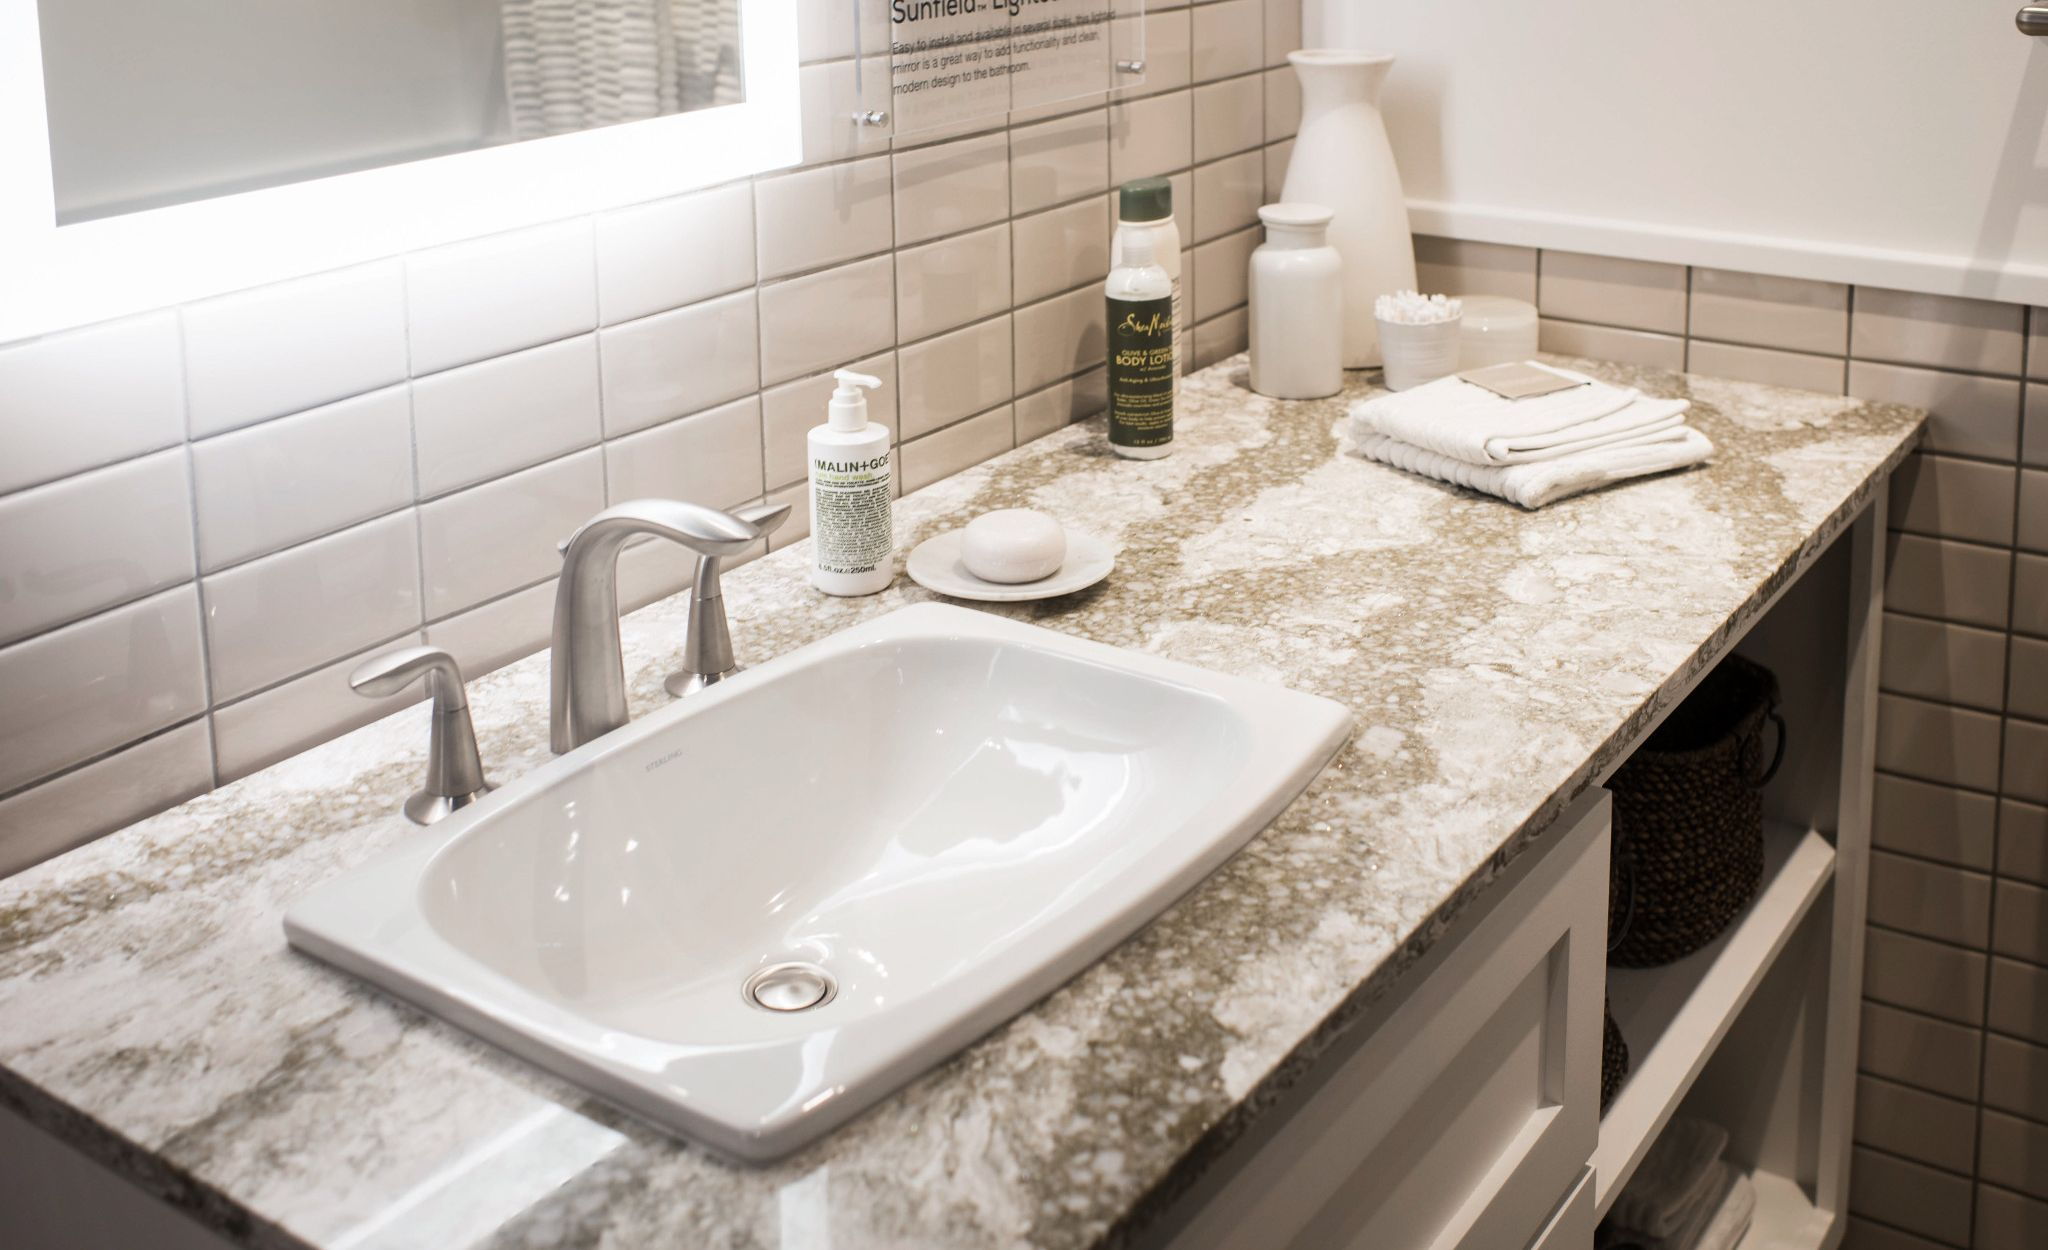 Cambria Beaumont™ bathroom countertops create a warm greige palette.